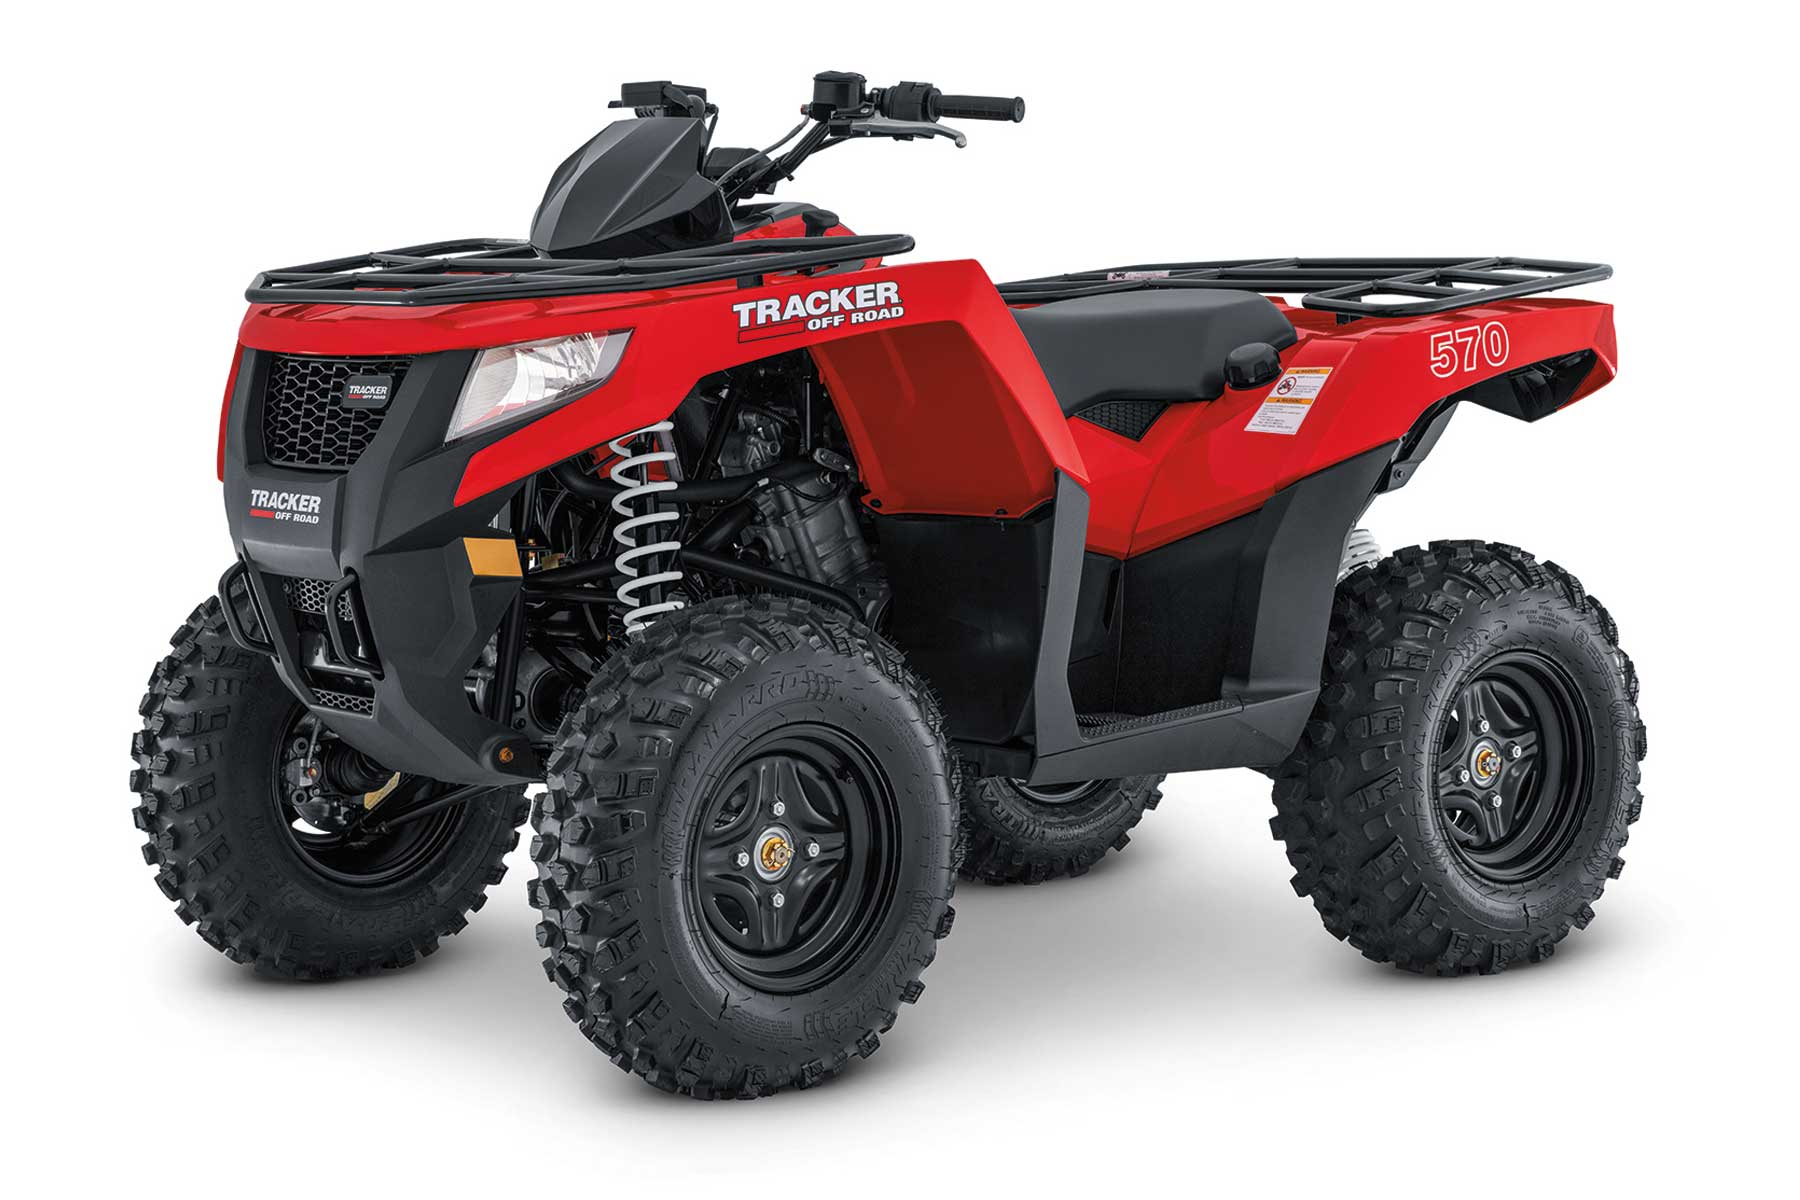 Tracker Off road 570